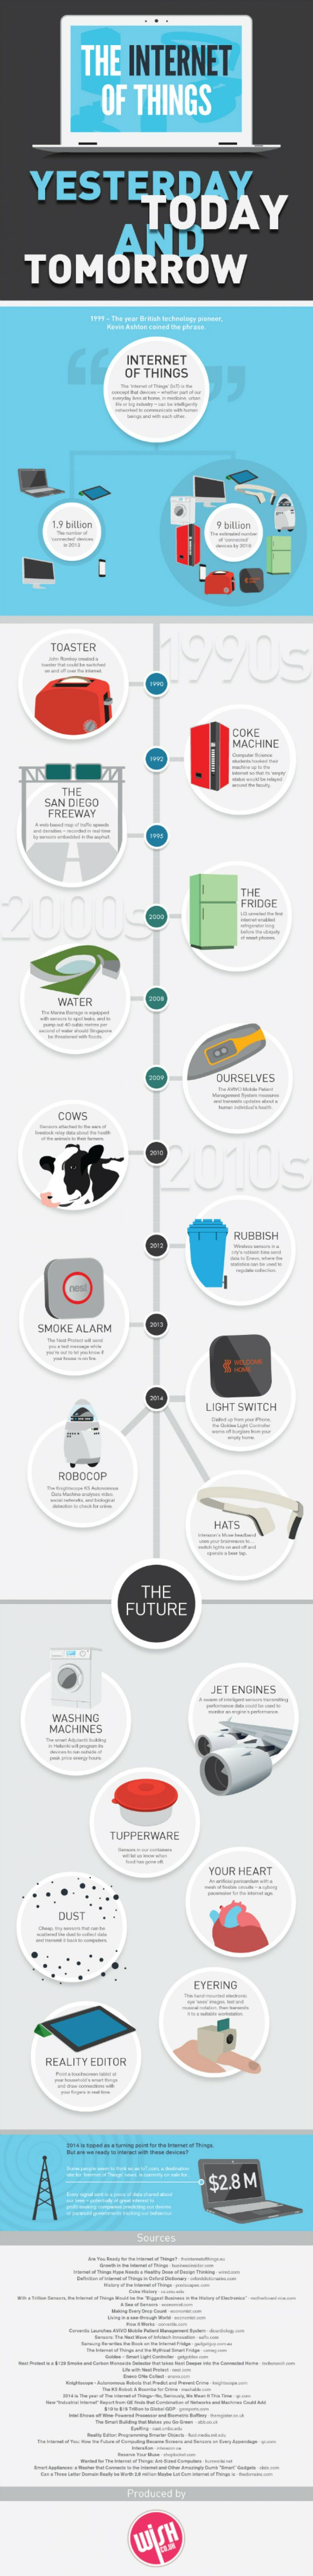 The Internet of Things: Yesterday, Today and Tomorrow   #Infographic #Internet #IOT